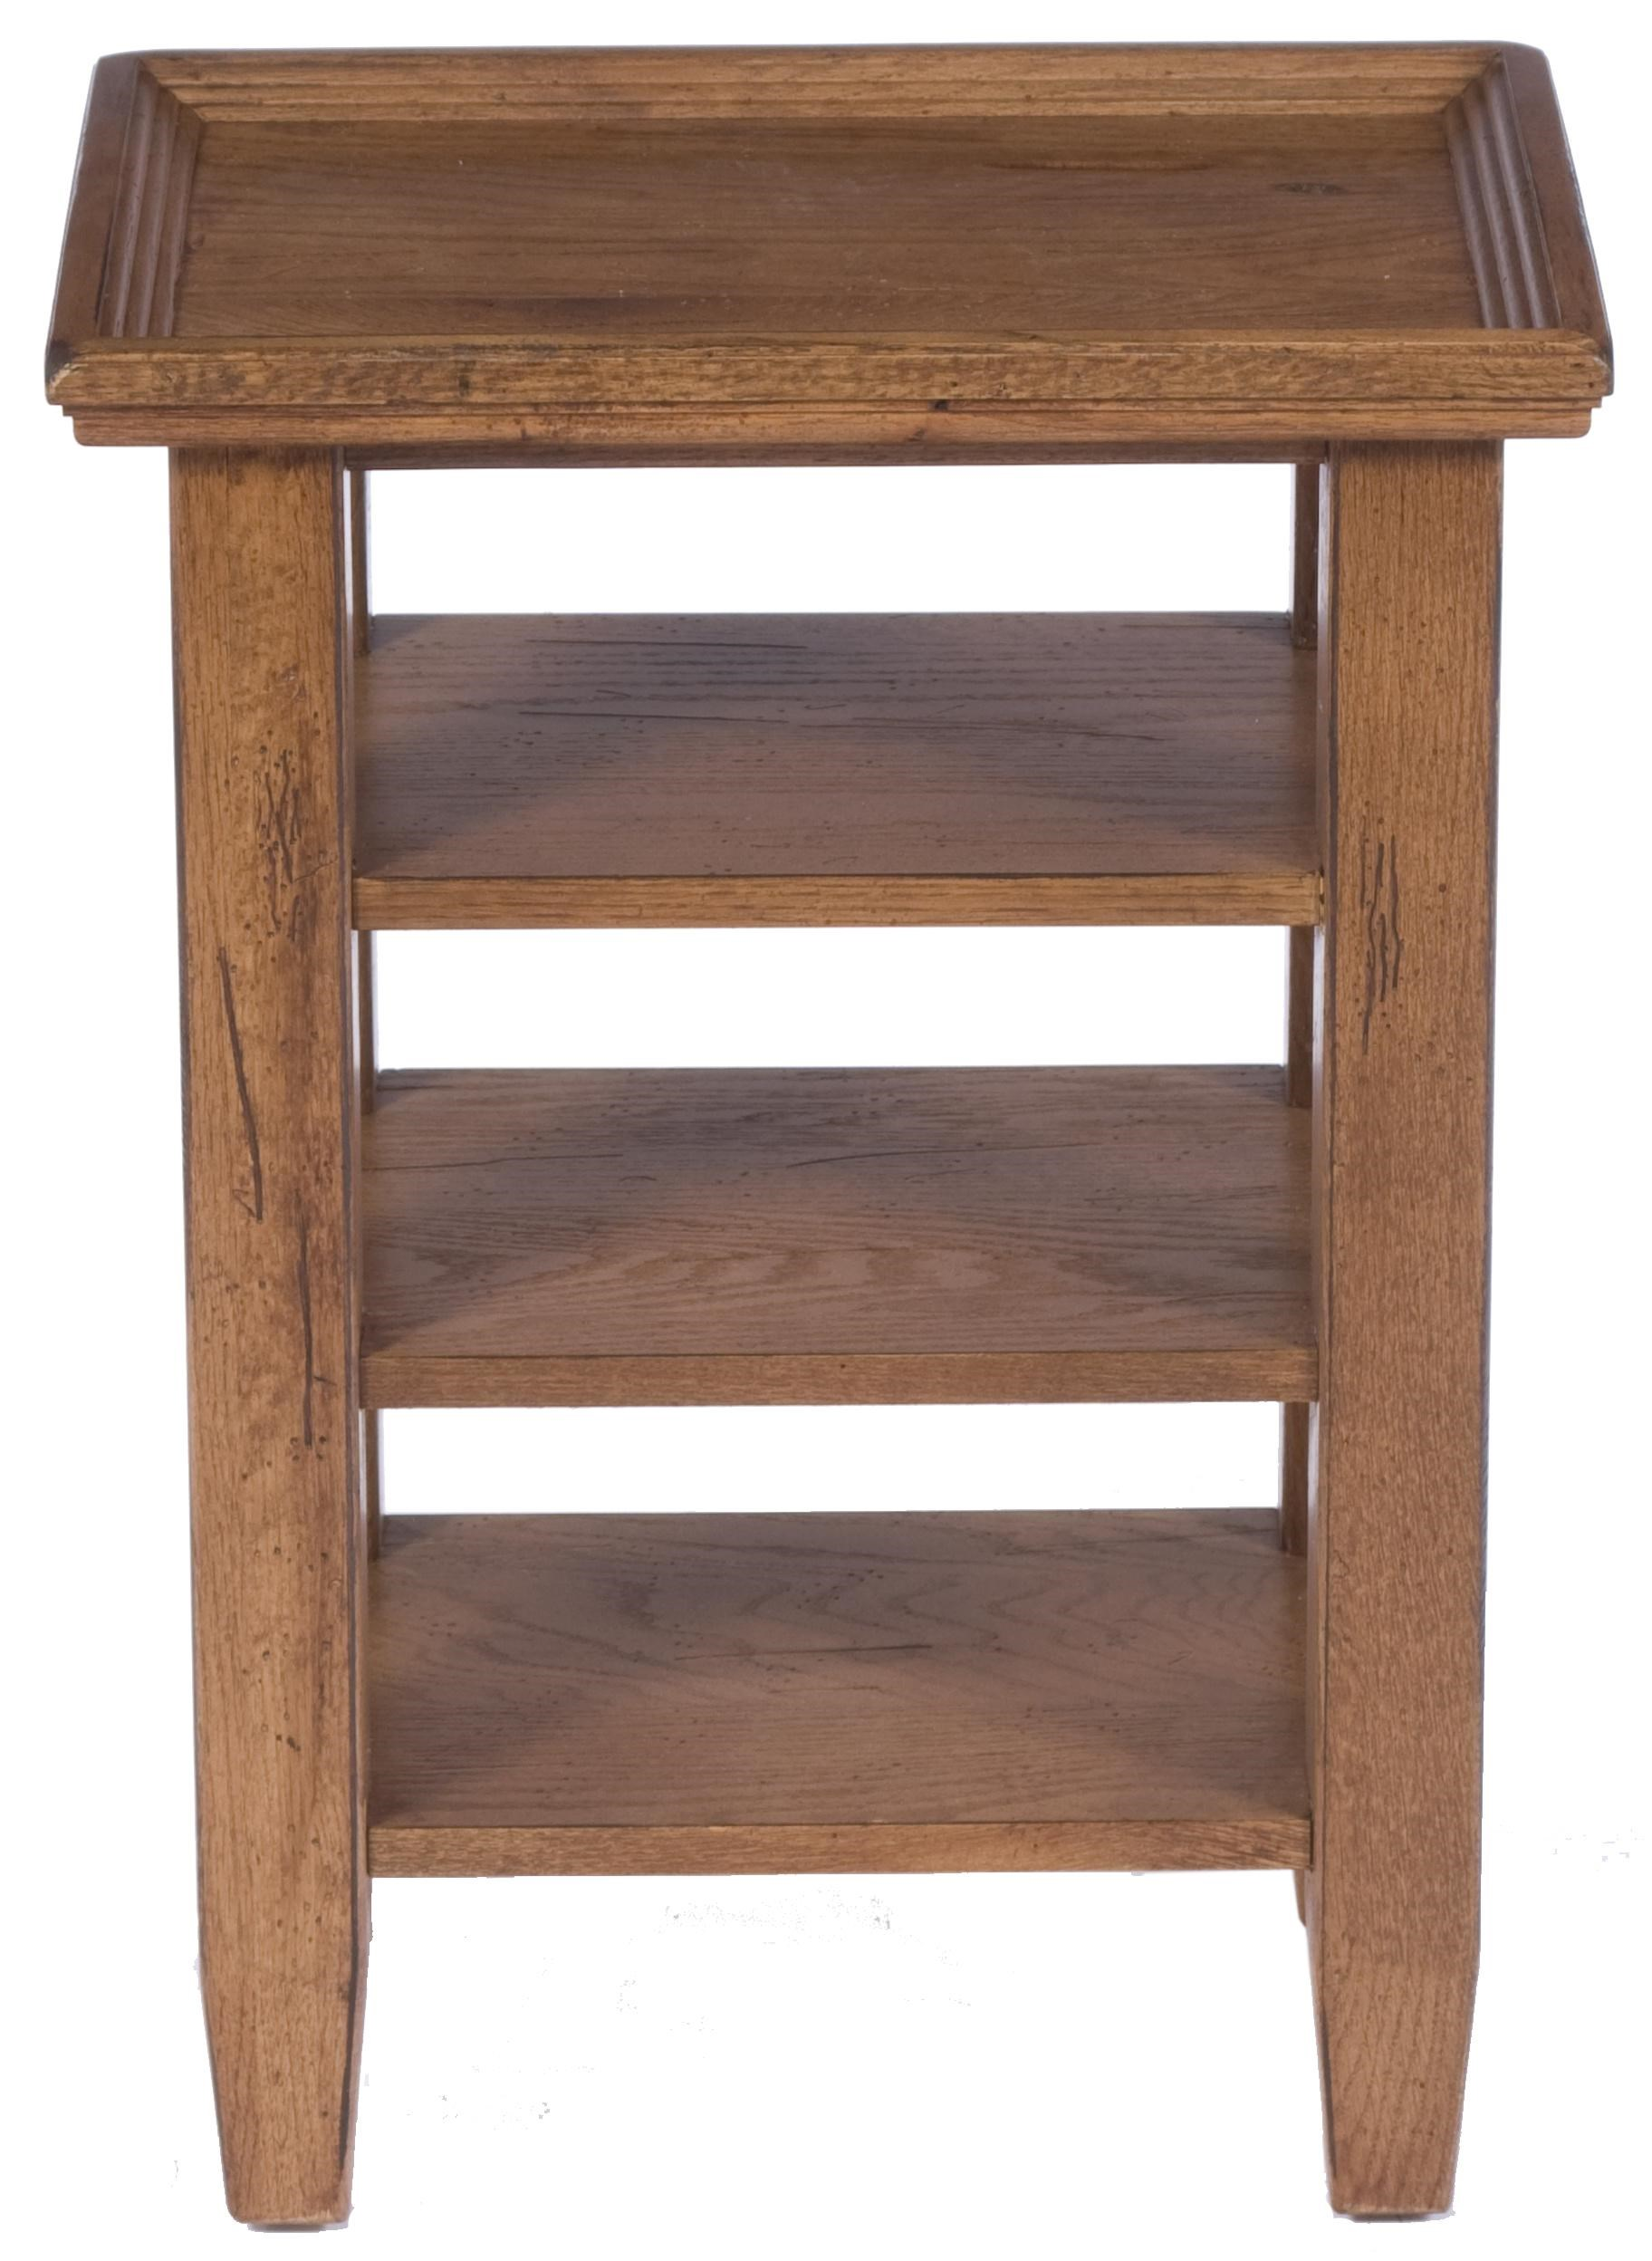 Delicieux Broyhill Furniture Attic HeirloomsEnd Table ...